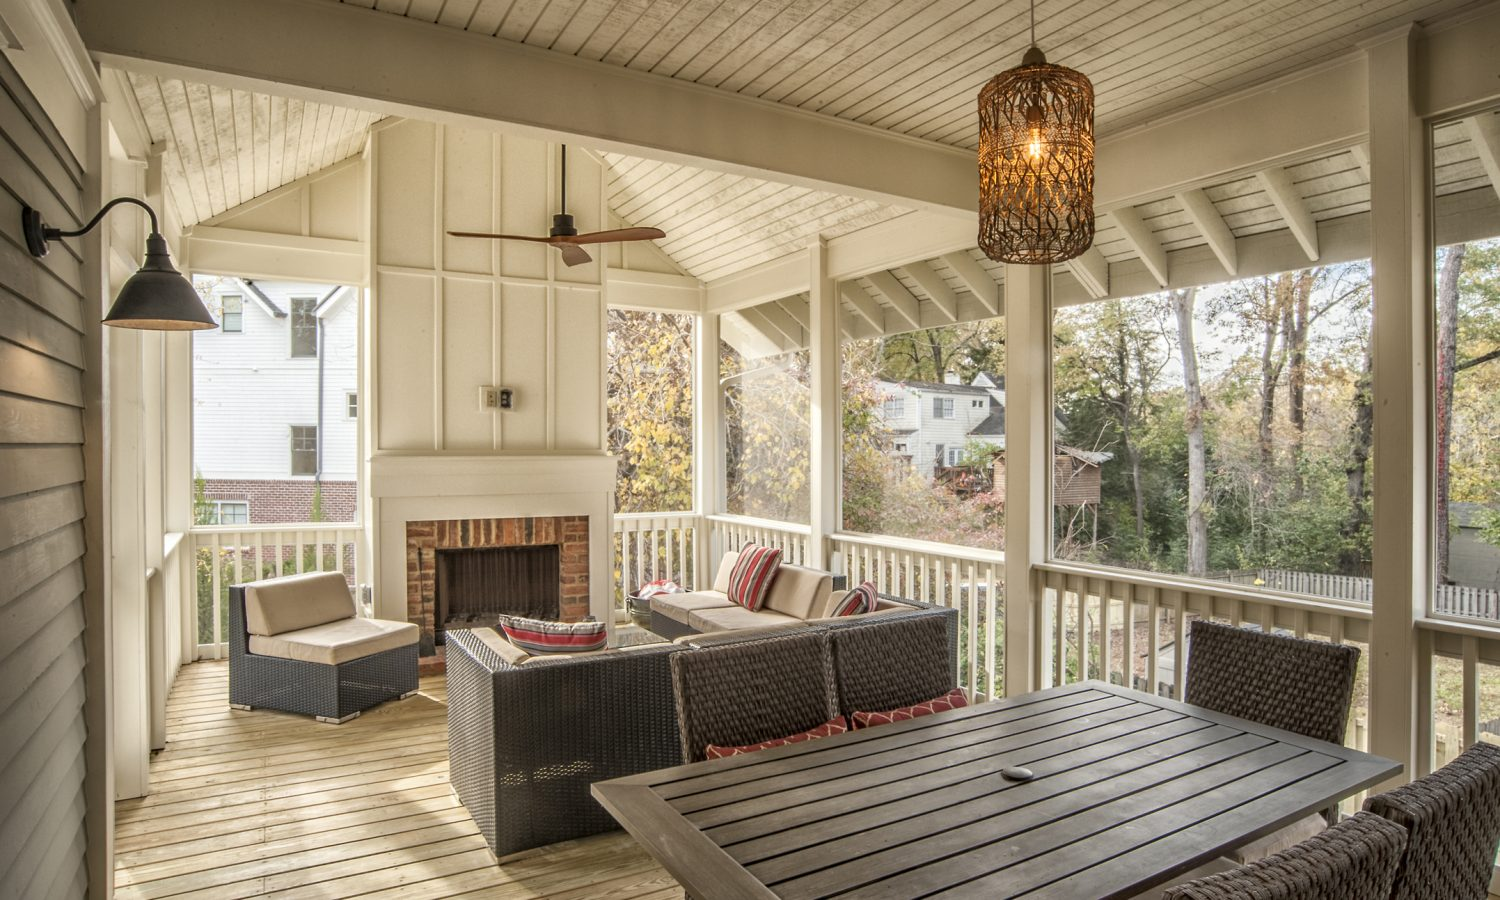 114-Woodlawn-Screened-Porch-04-1.jpg